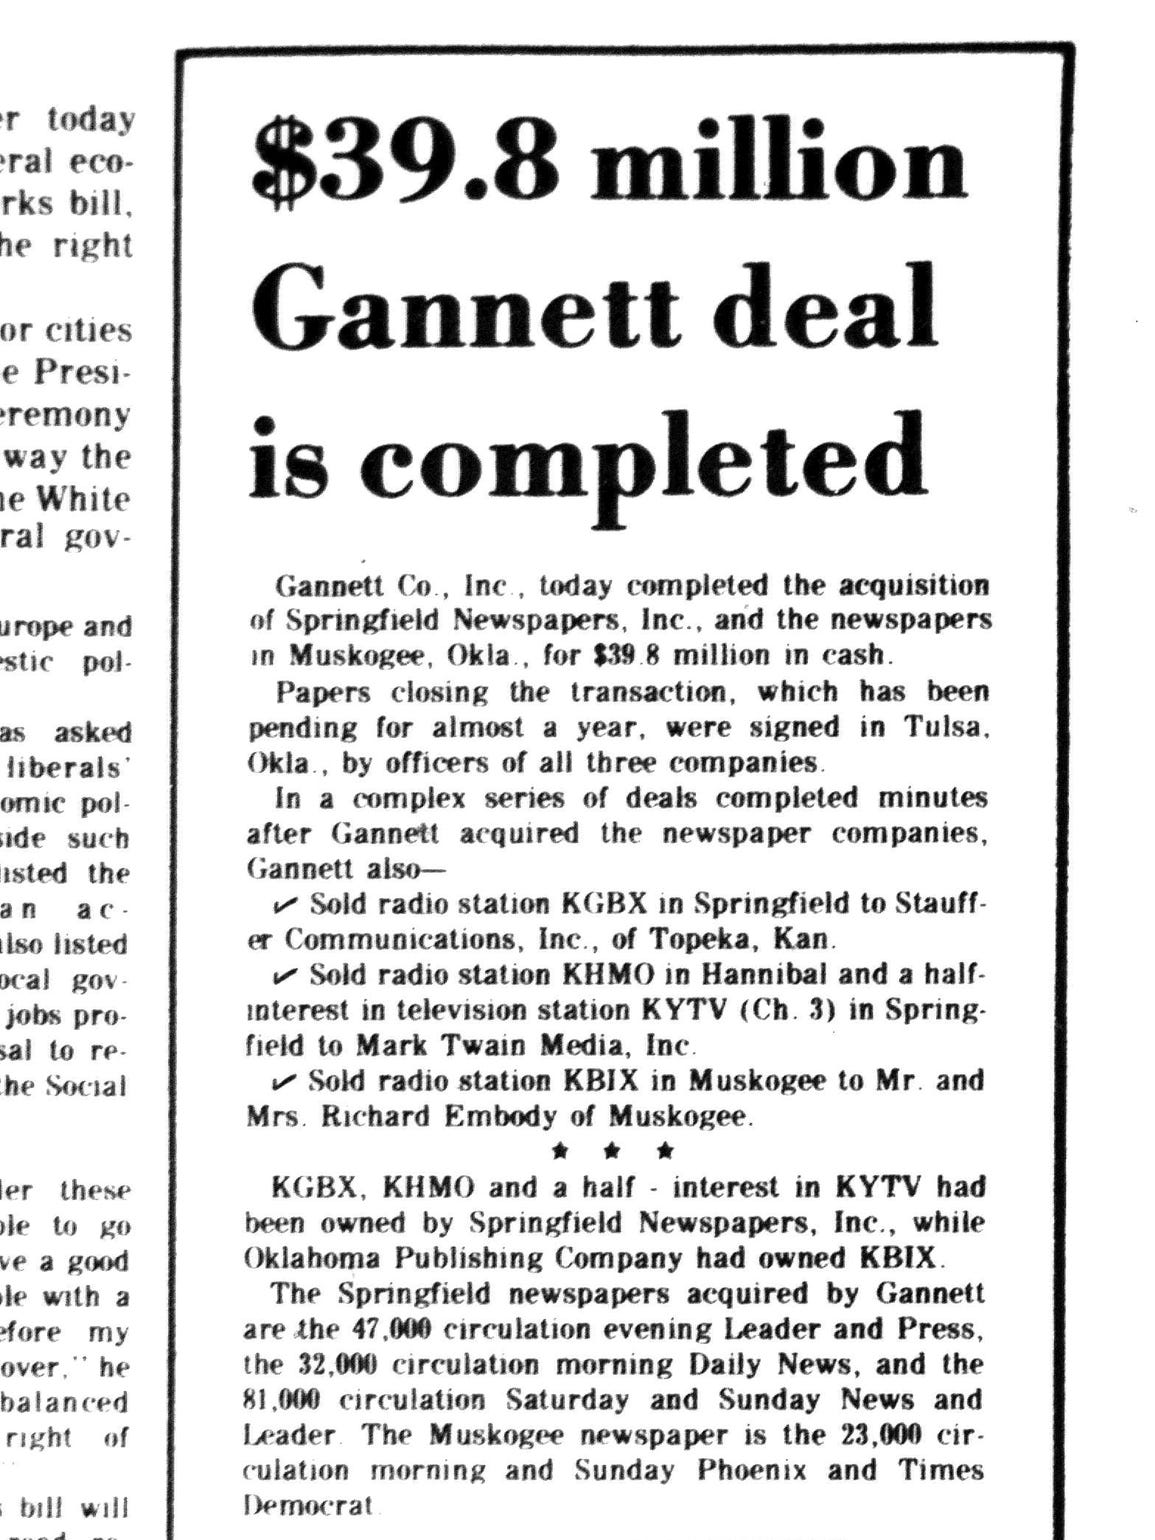 1977: Gannett purchases the News-Leader